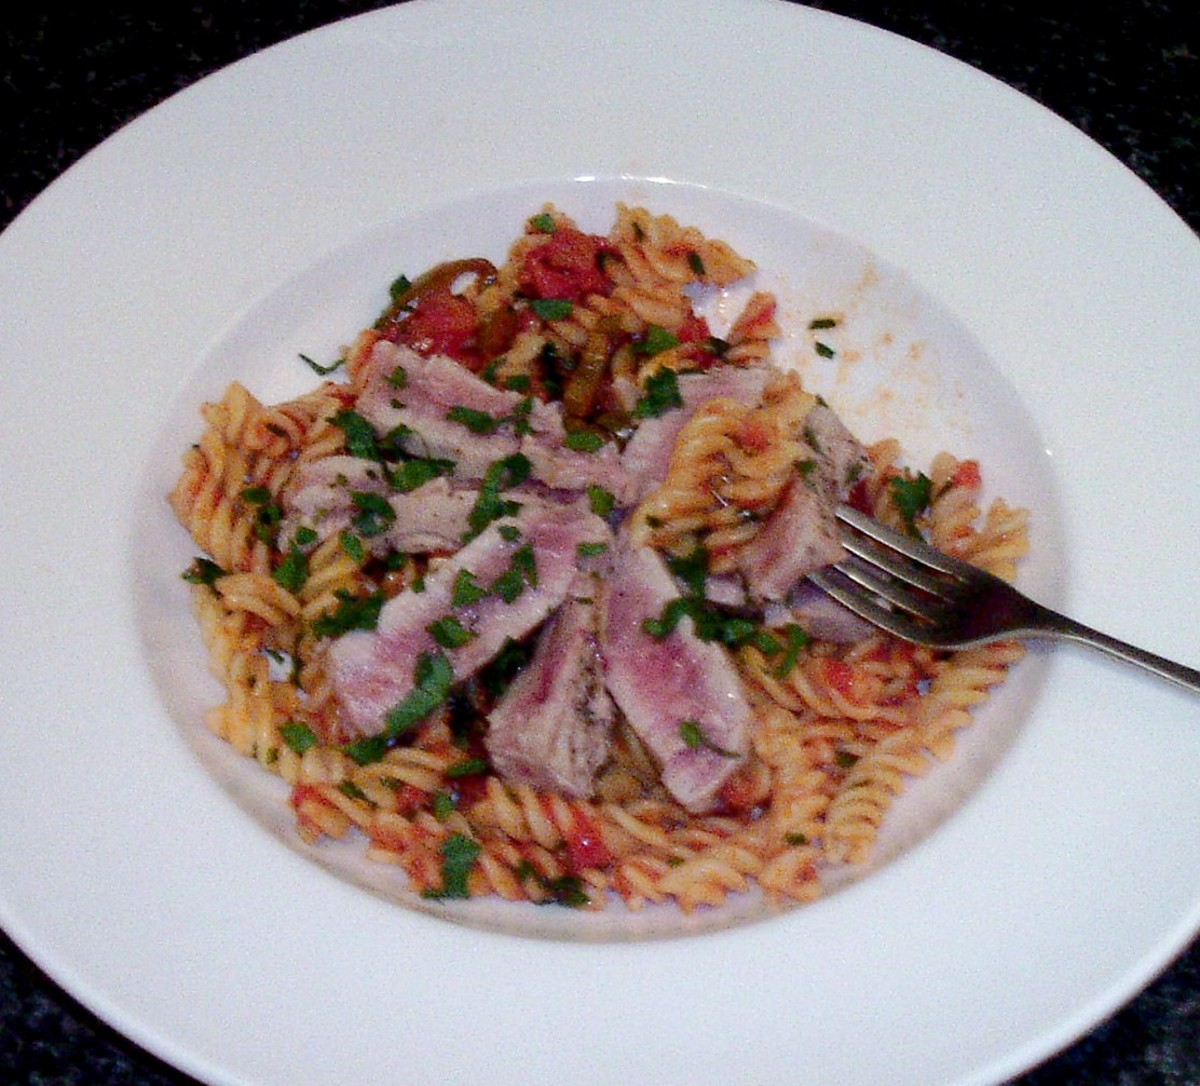 Enjoying seared tuna fillet with spicy tomato fusilli pasta